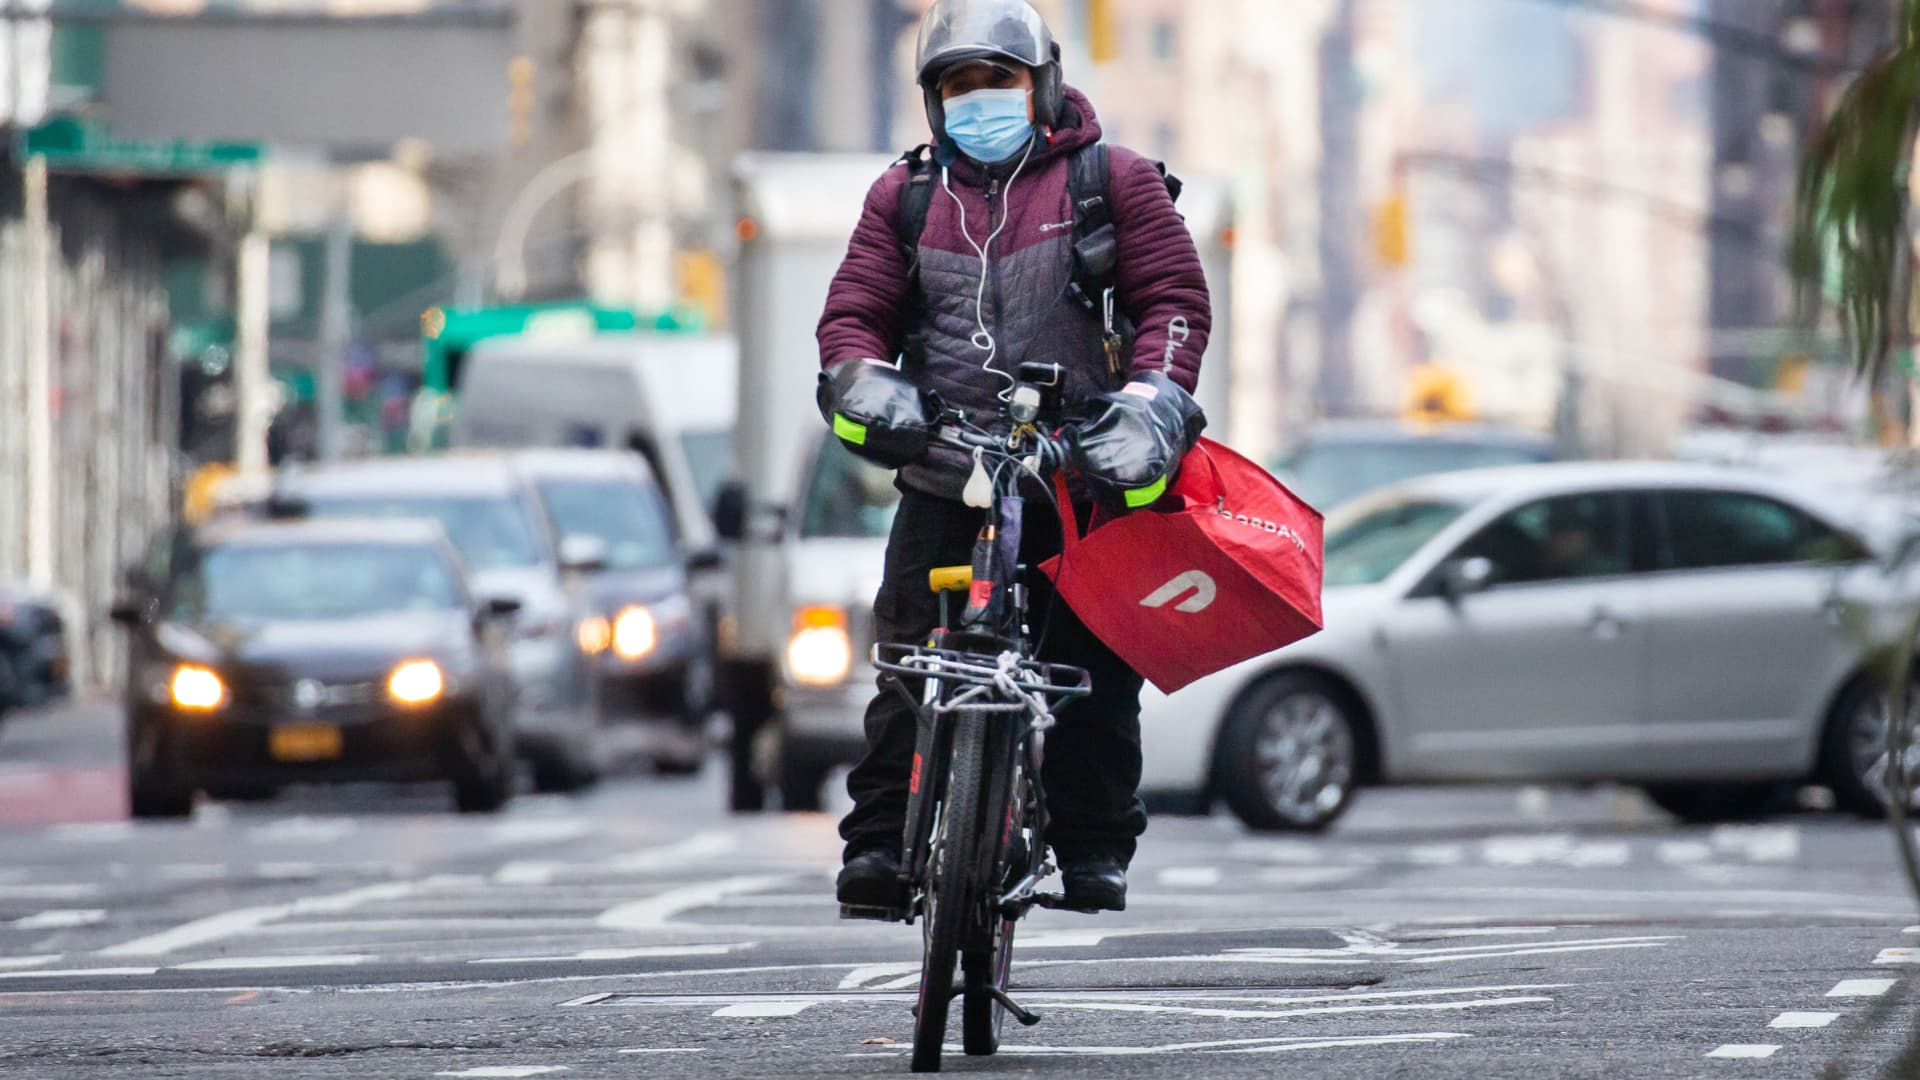 A bike messenger carries a DoorDash bag during a delivery in New York, Wednesday, Dec. 9, 2020.